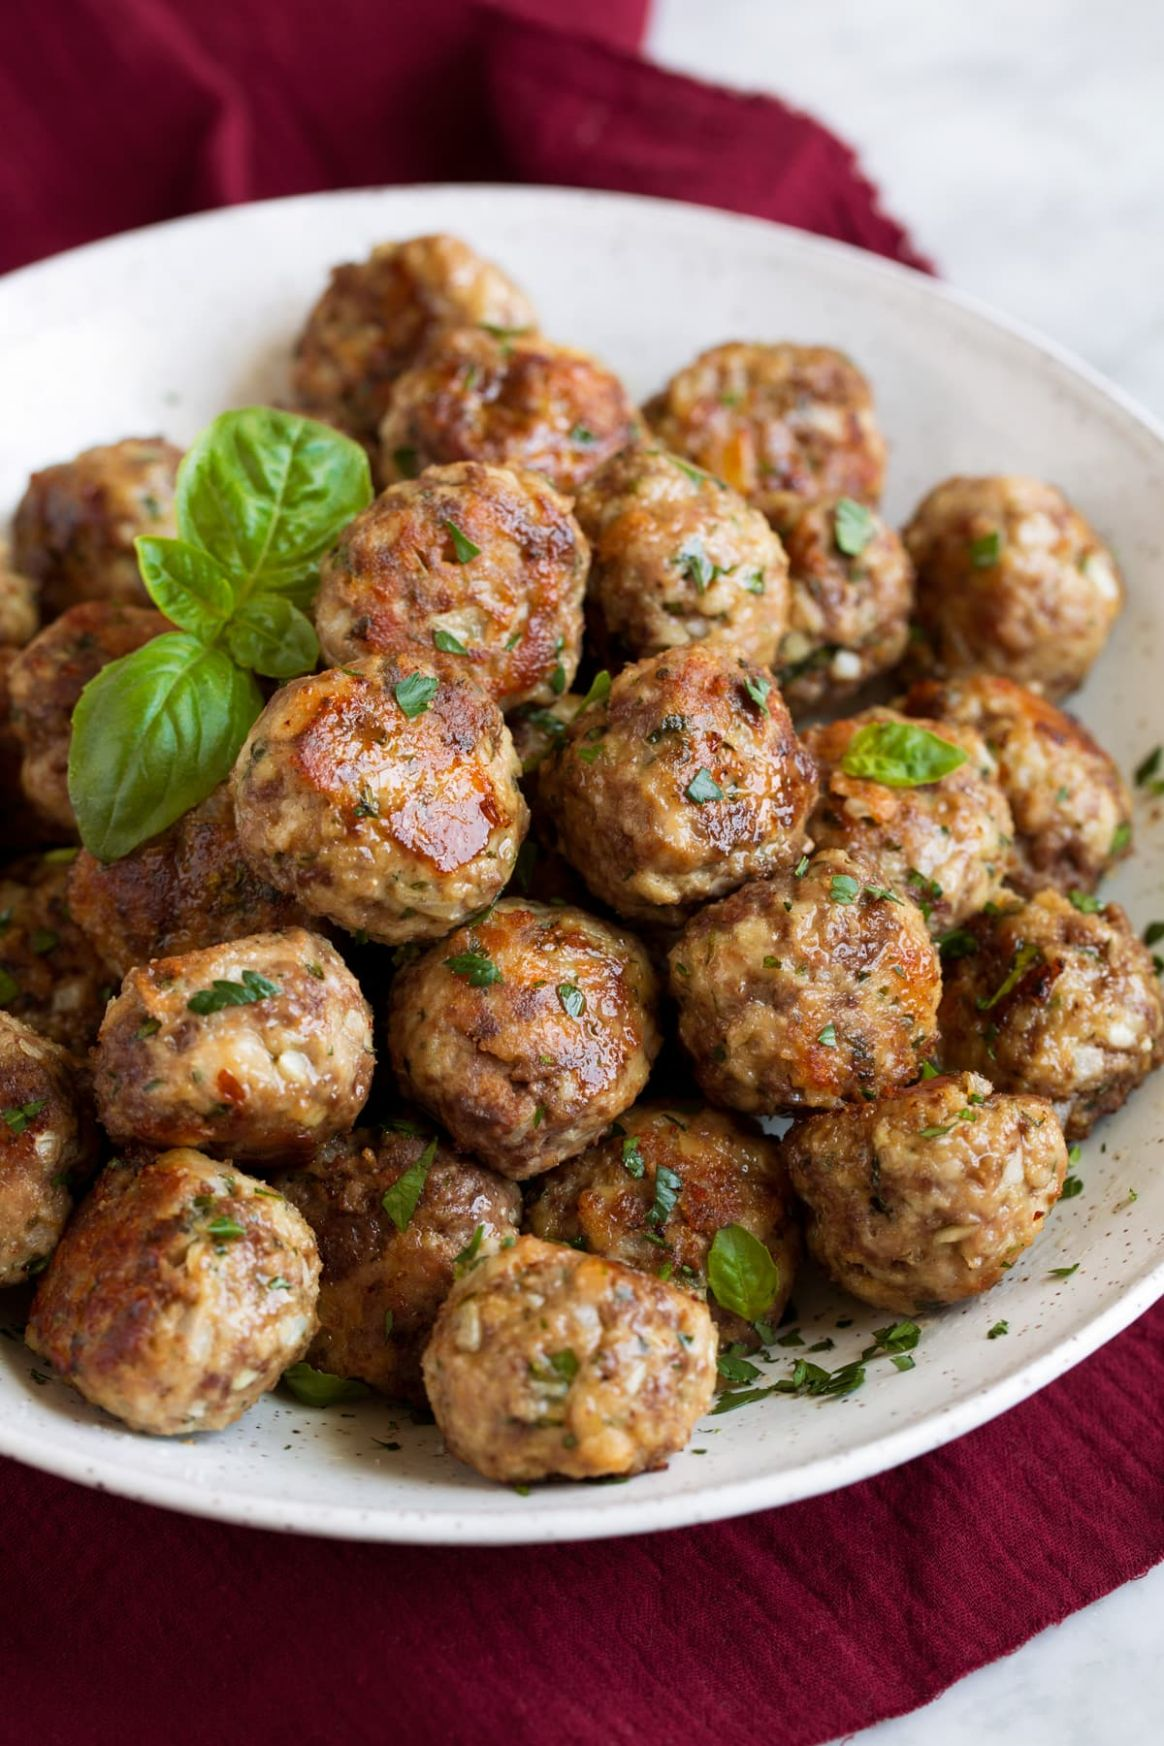 Best Meatball Recipe (Baked or Fried) - Cooking Classy - Recipes Beef Meatballs